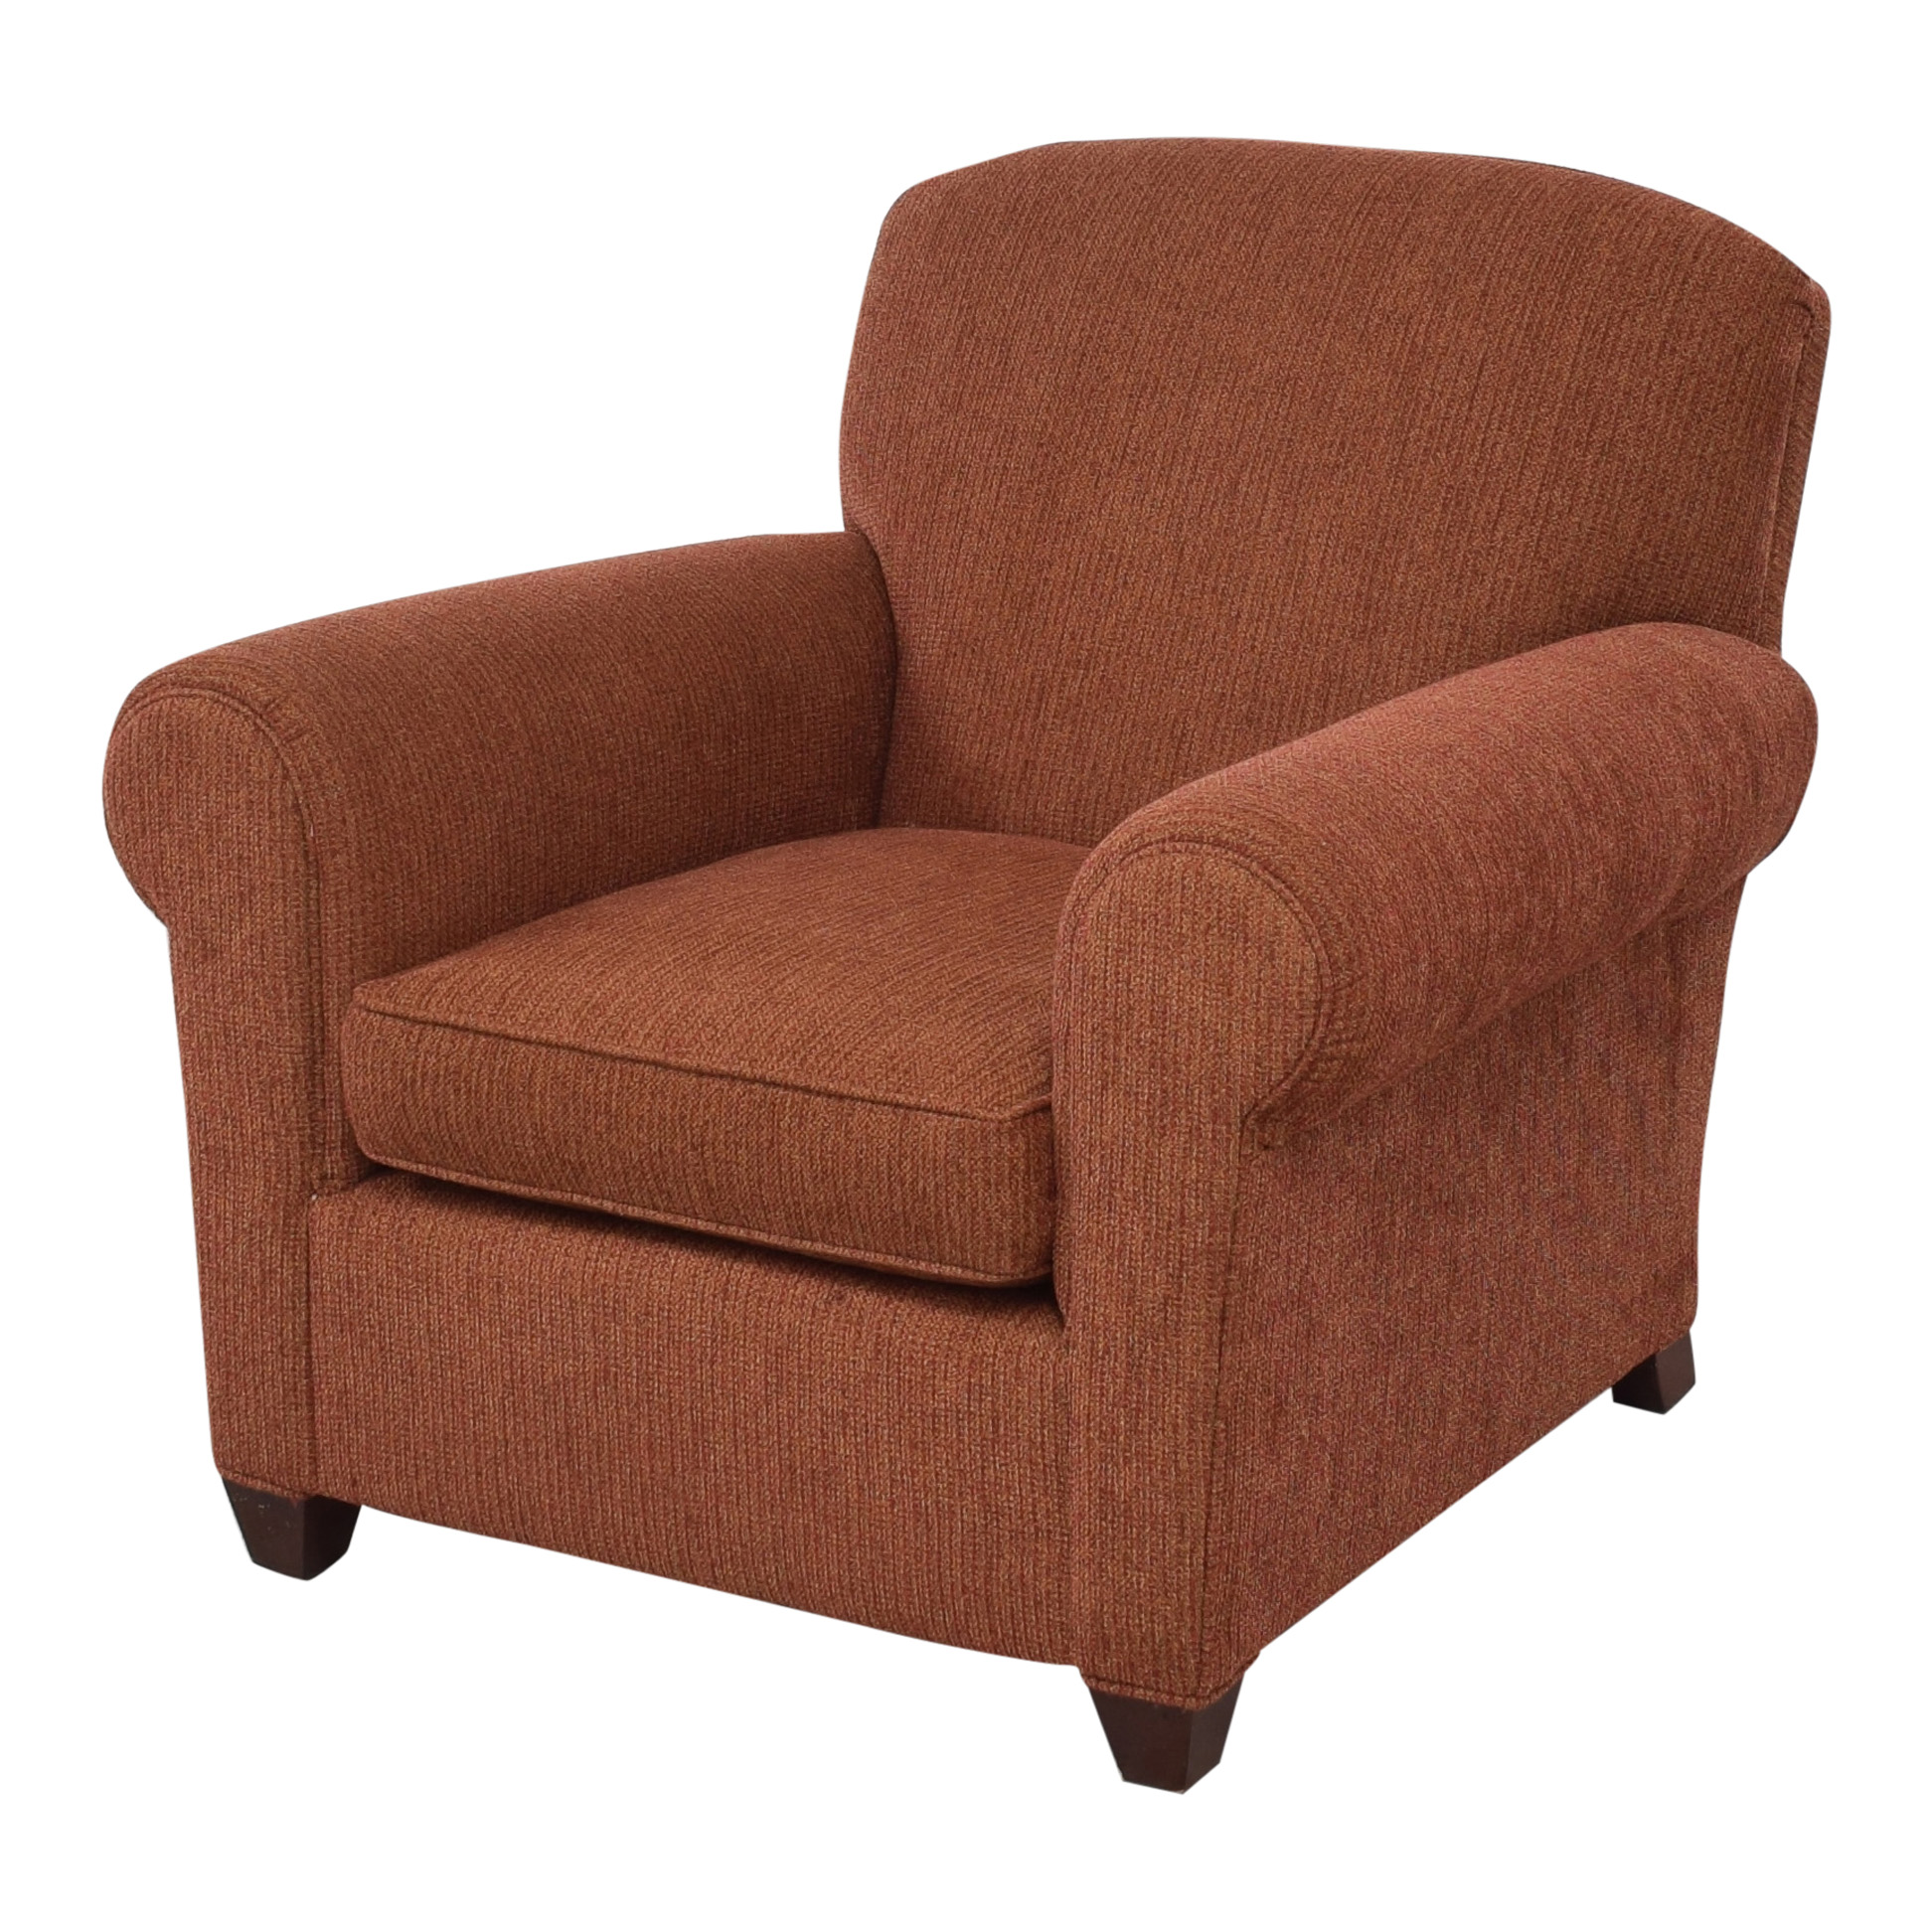 Crate & Barrel Crate & Barrel by Mitchell Gold Armchair Chairs